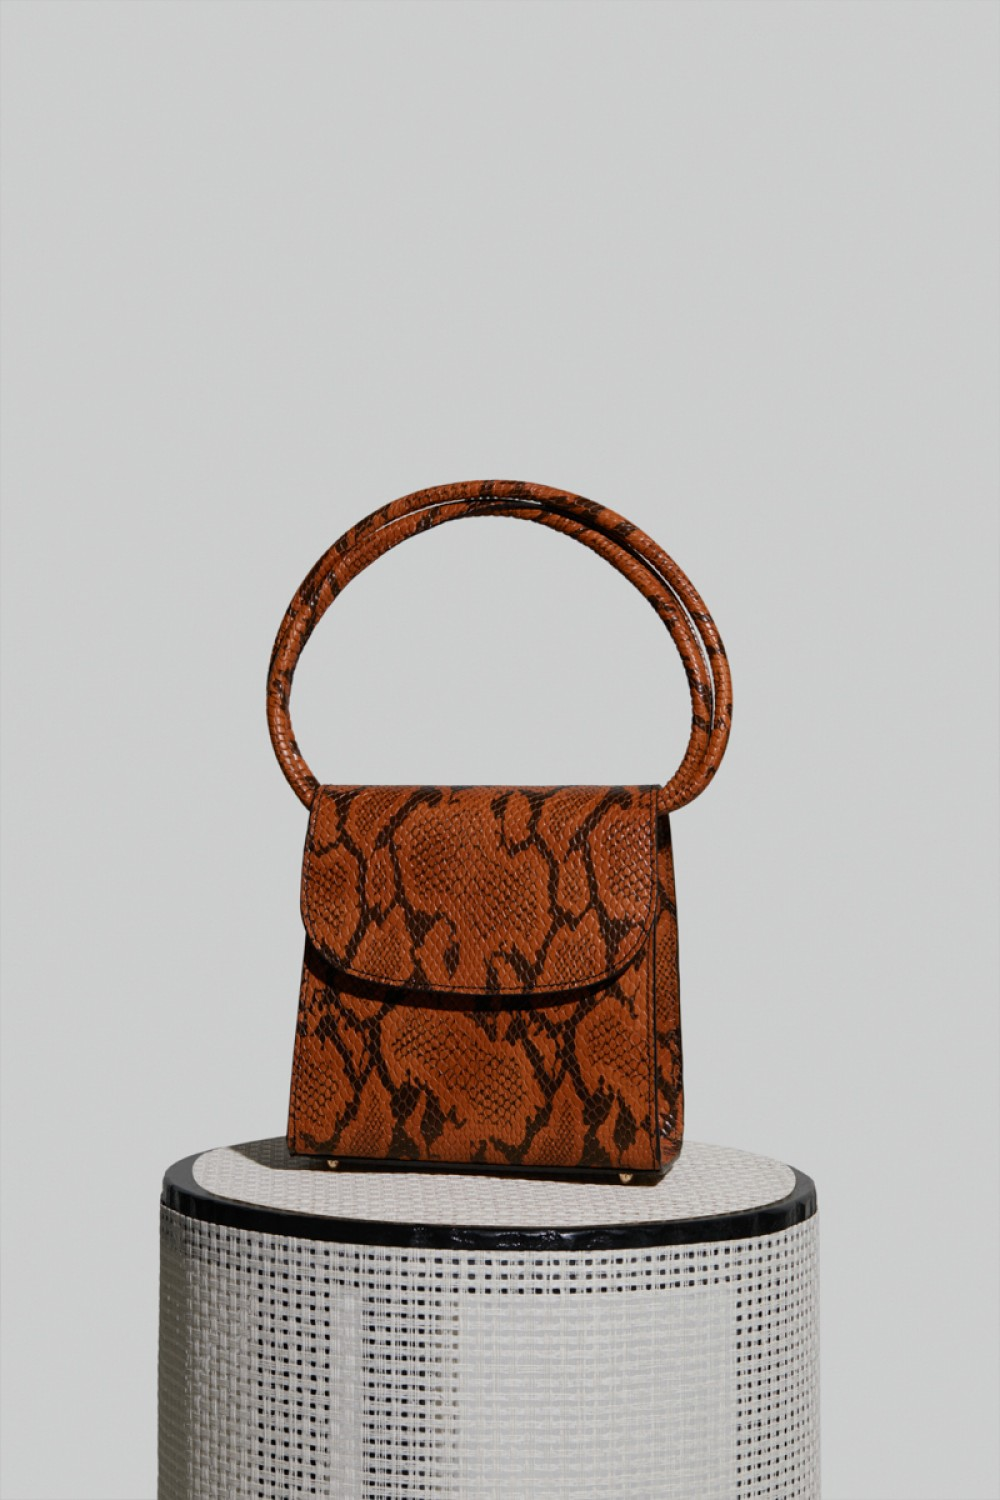 Loop Bag in Snake Leather